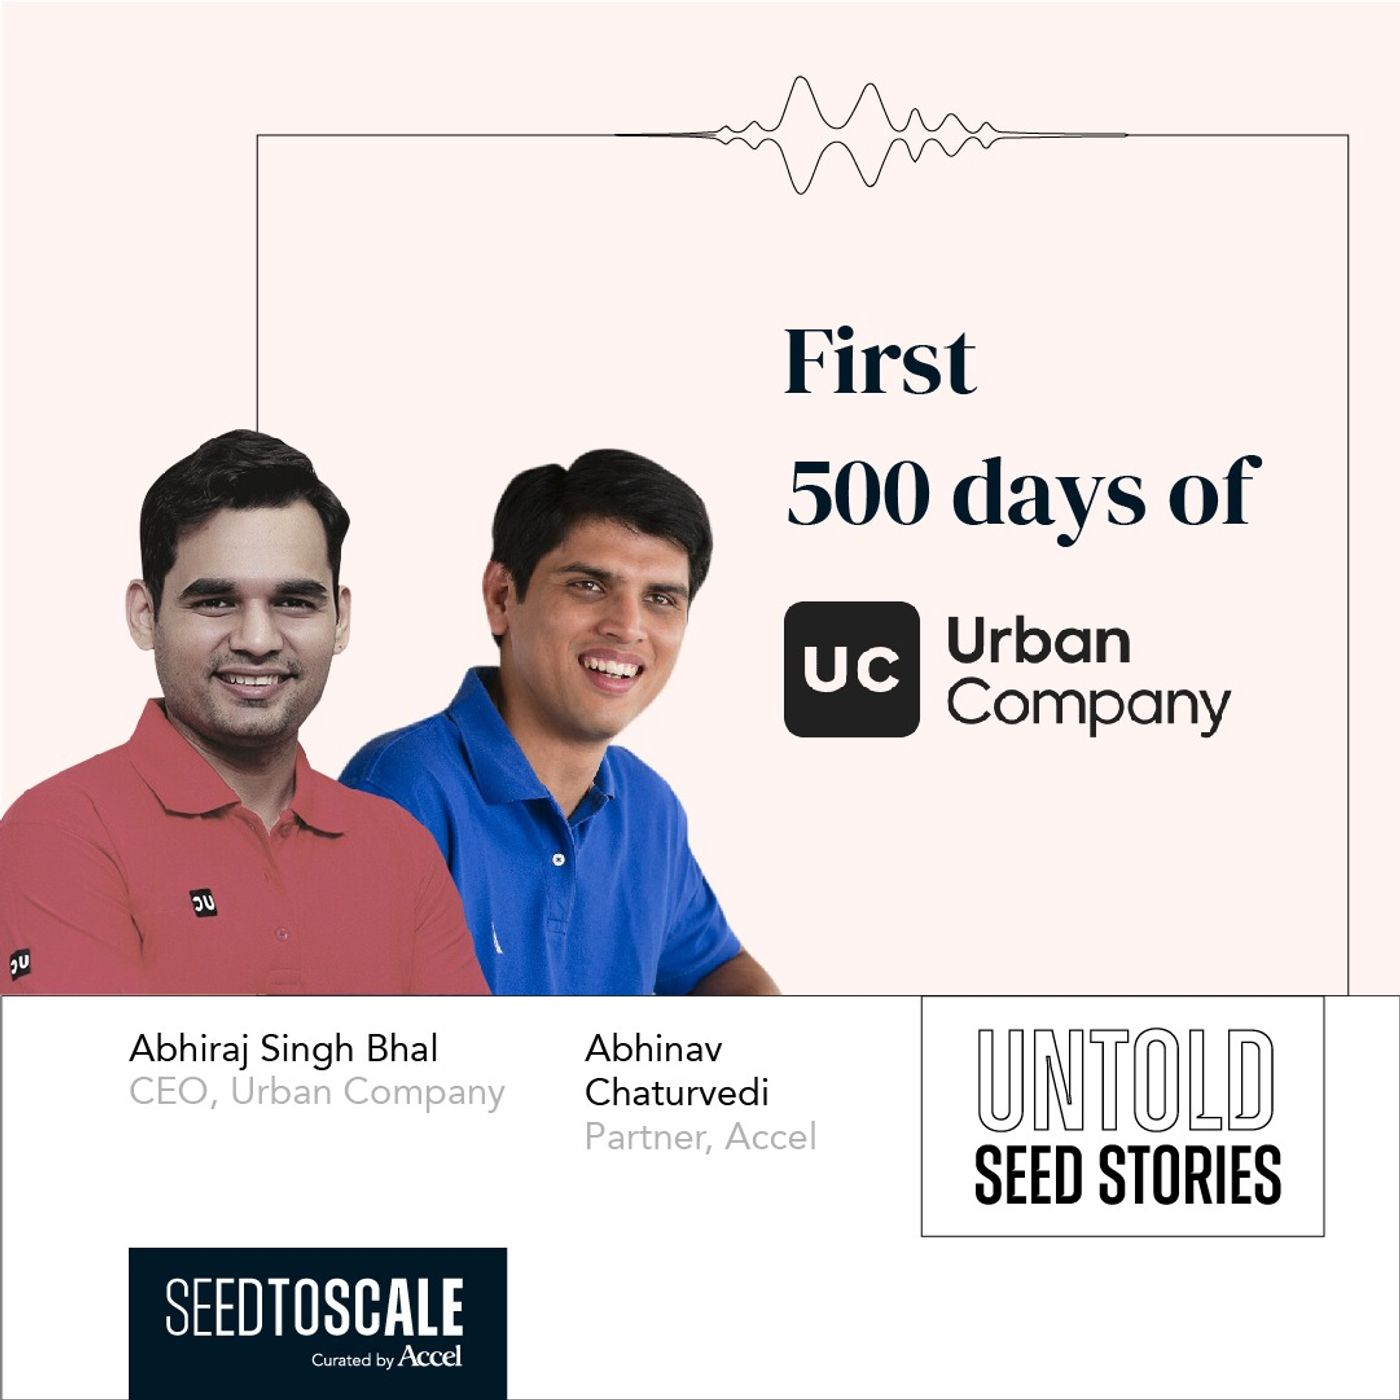 INSIGHTS #59 – Untold Seed Stories: First 500 Days of Urban Company